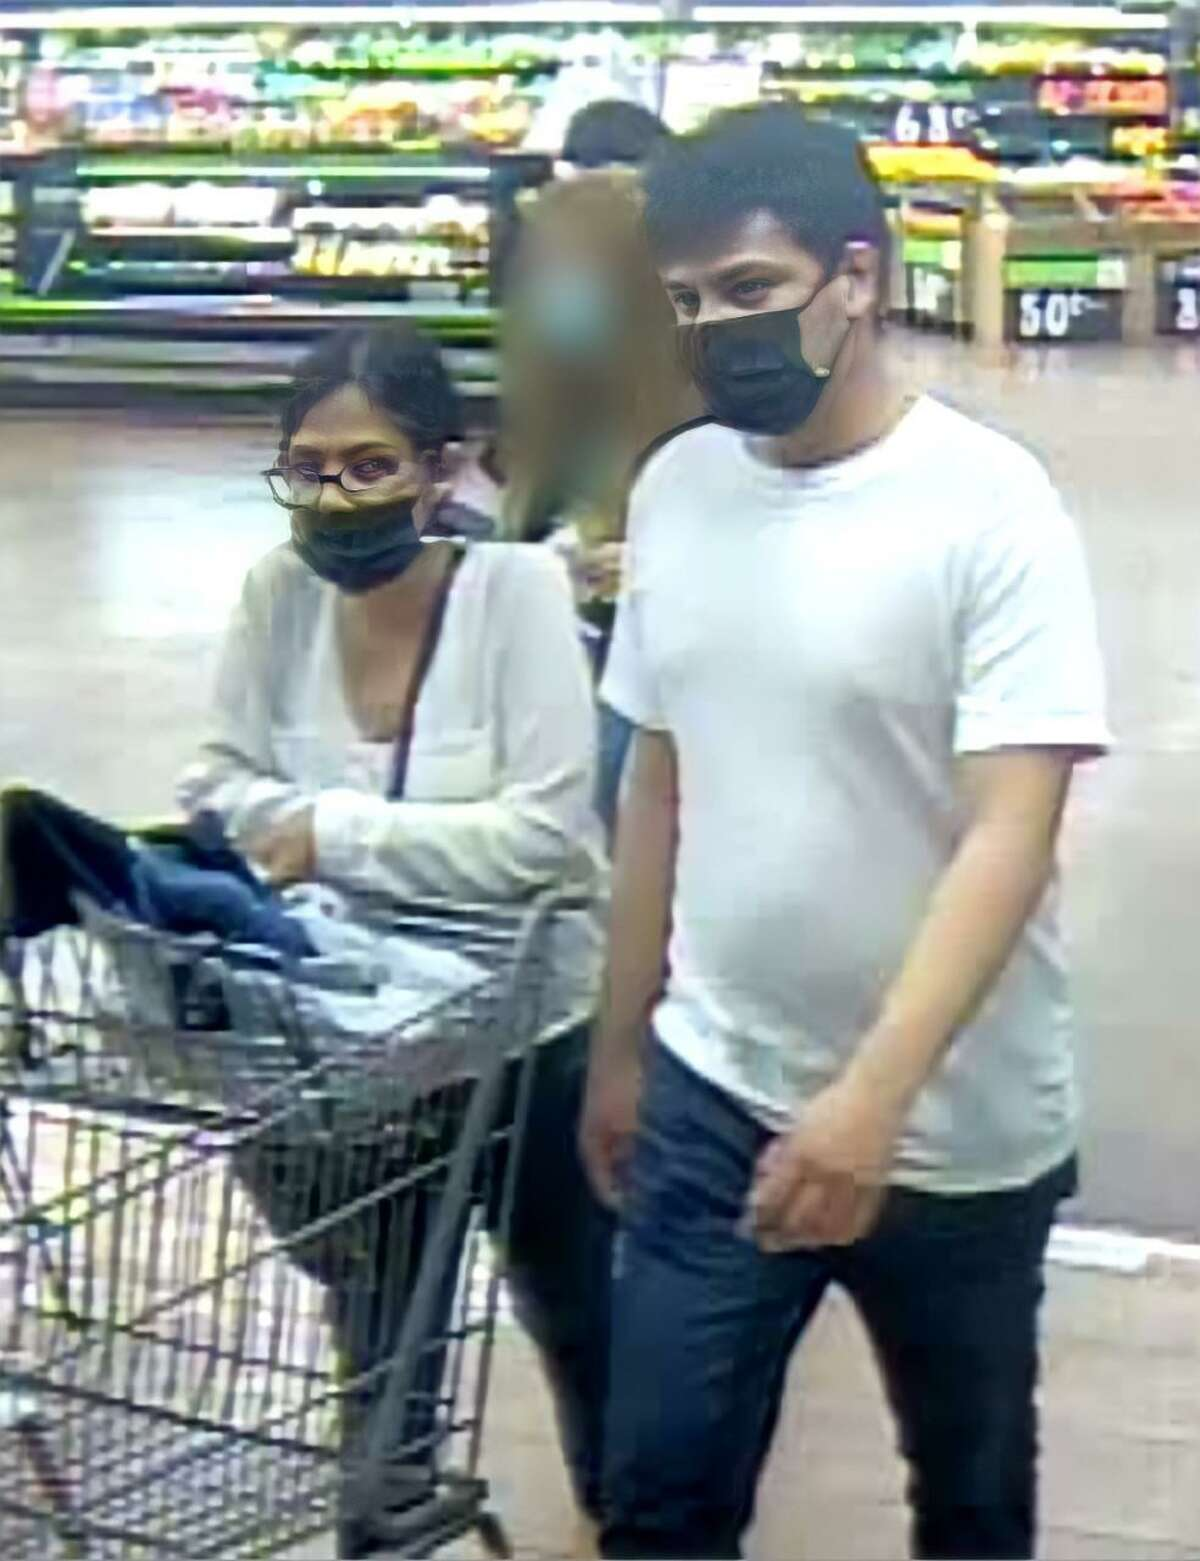 Laredo police said they need to identify the man in this photo in relation to a recent assault case.